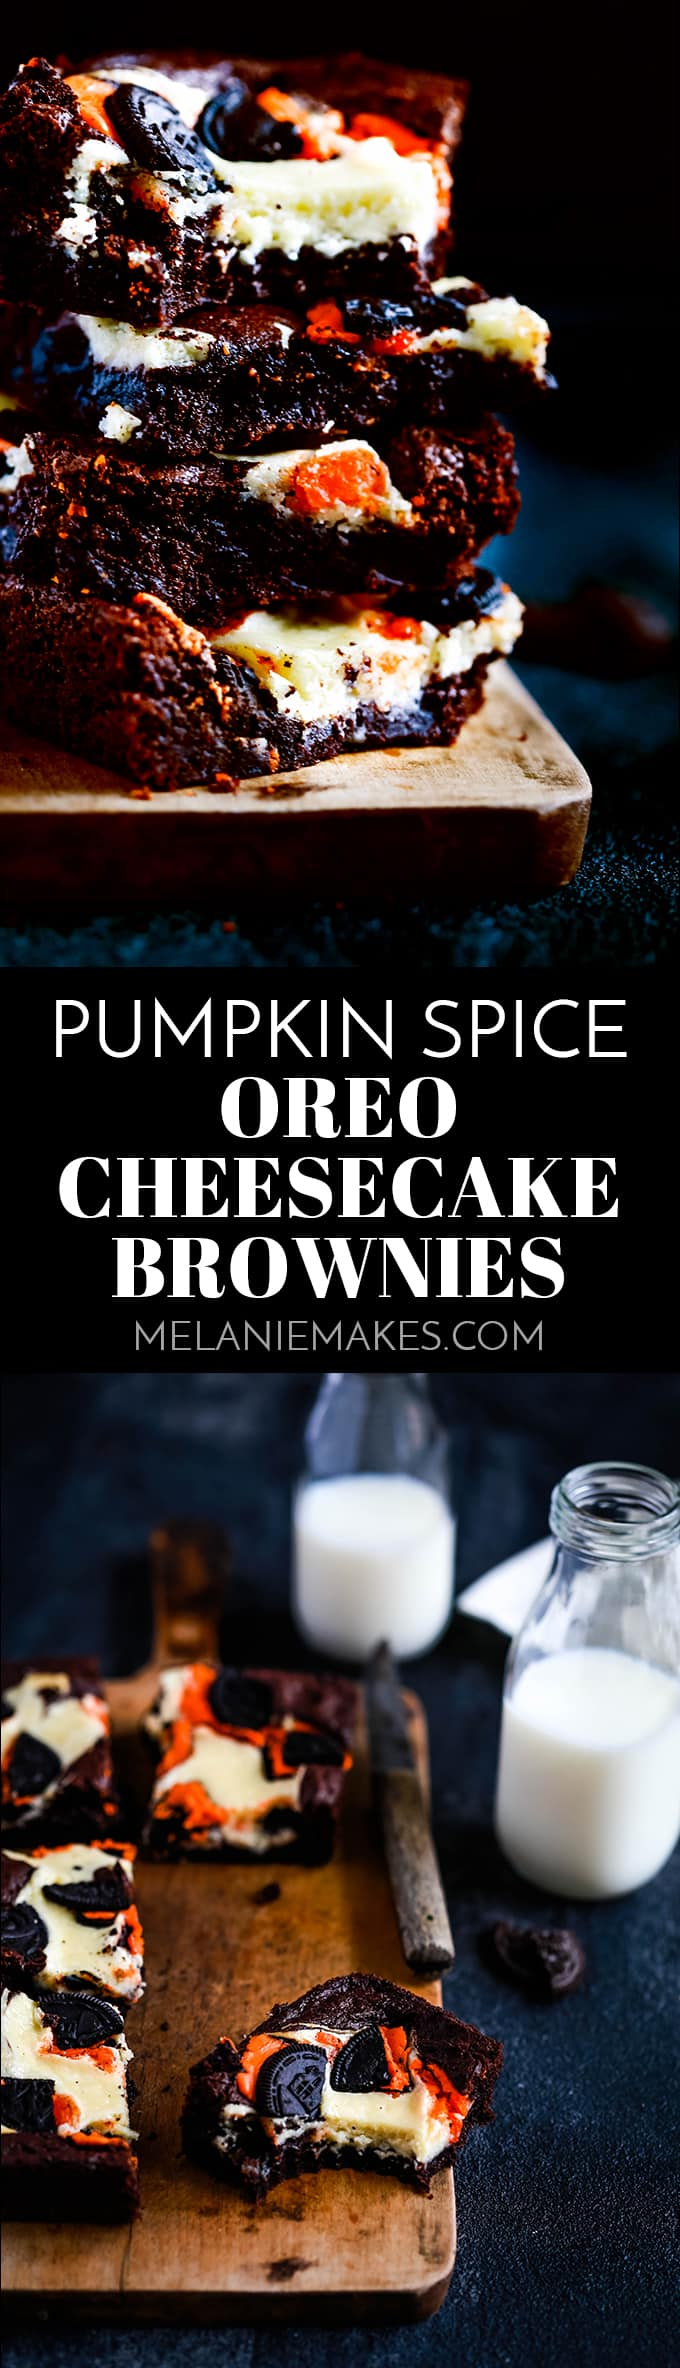 These Pumpkin Spice Oreo Cheesecake Brownies are a decadent chocolate treat with the warmth of autumn spices thanks to a shortcut ingredient. #pumpkinspice #oreos #oreocheesecake #brownies #autumn #fall #dessertrecipes